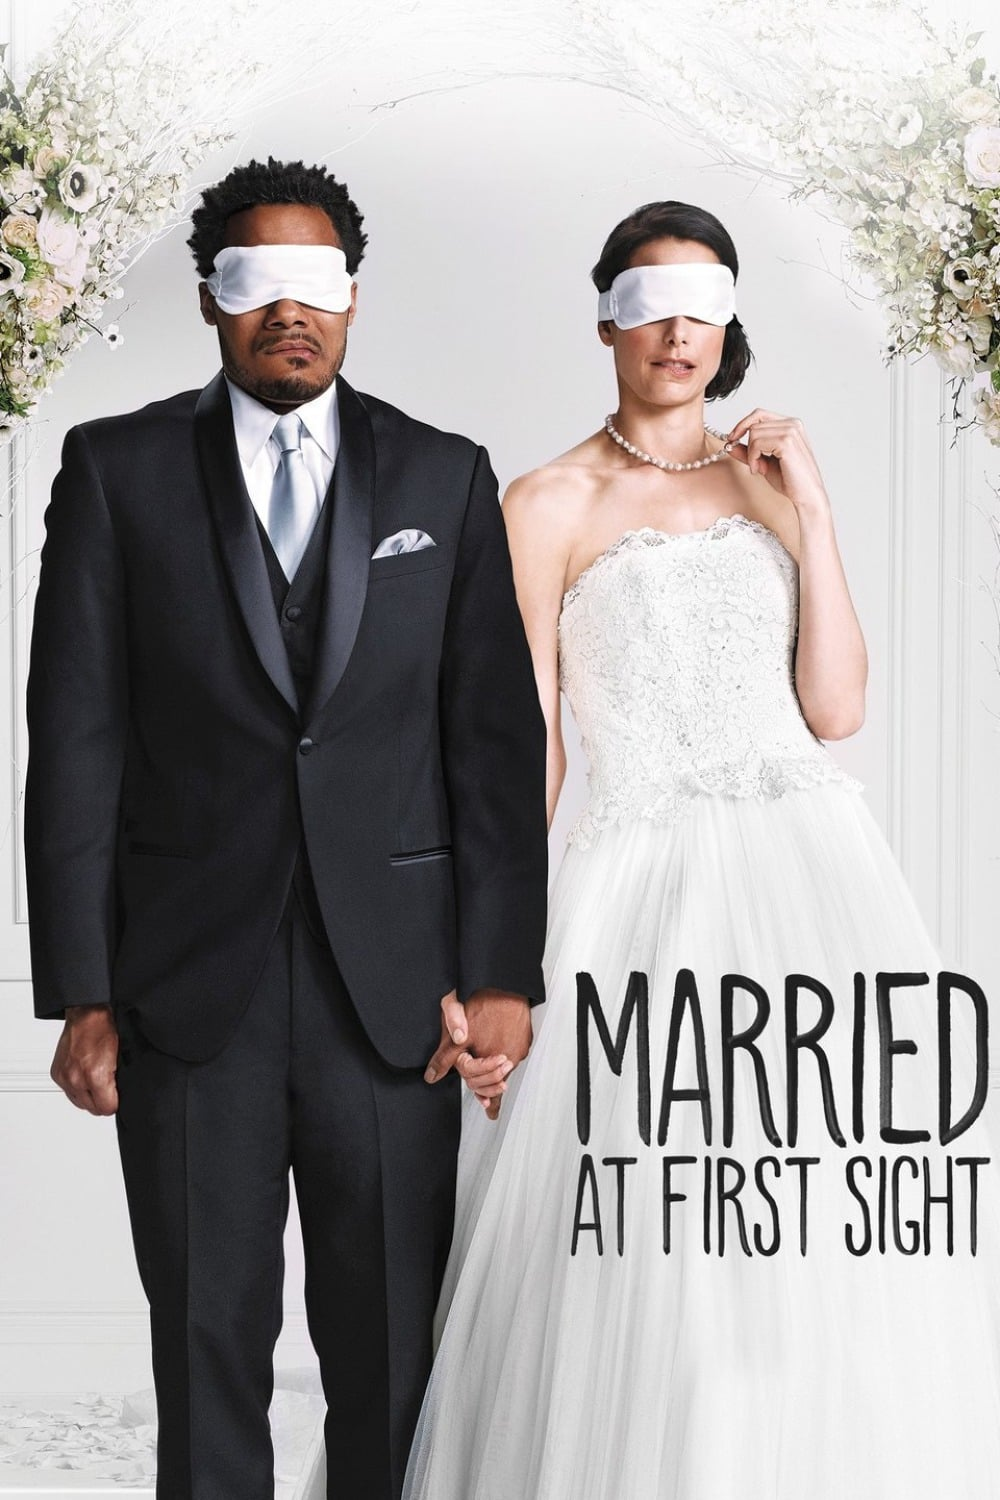 Married at First Sight UK - Season 6